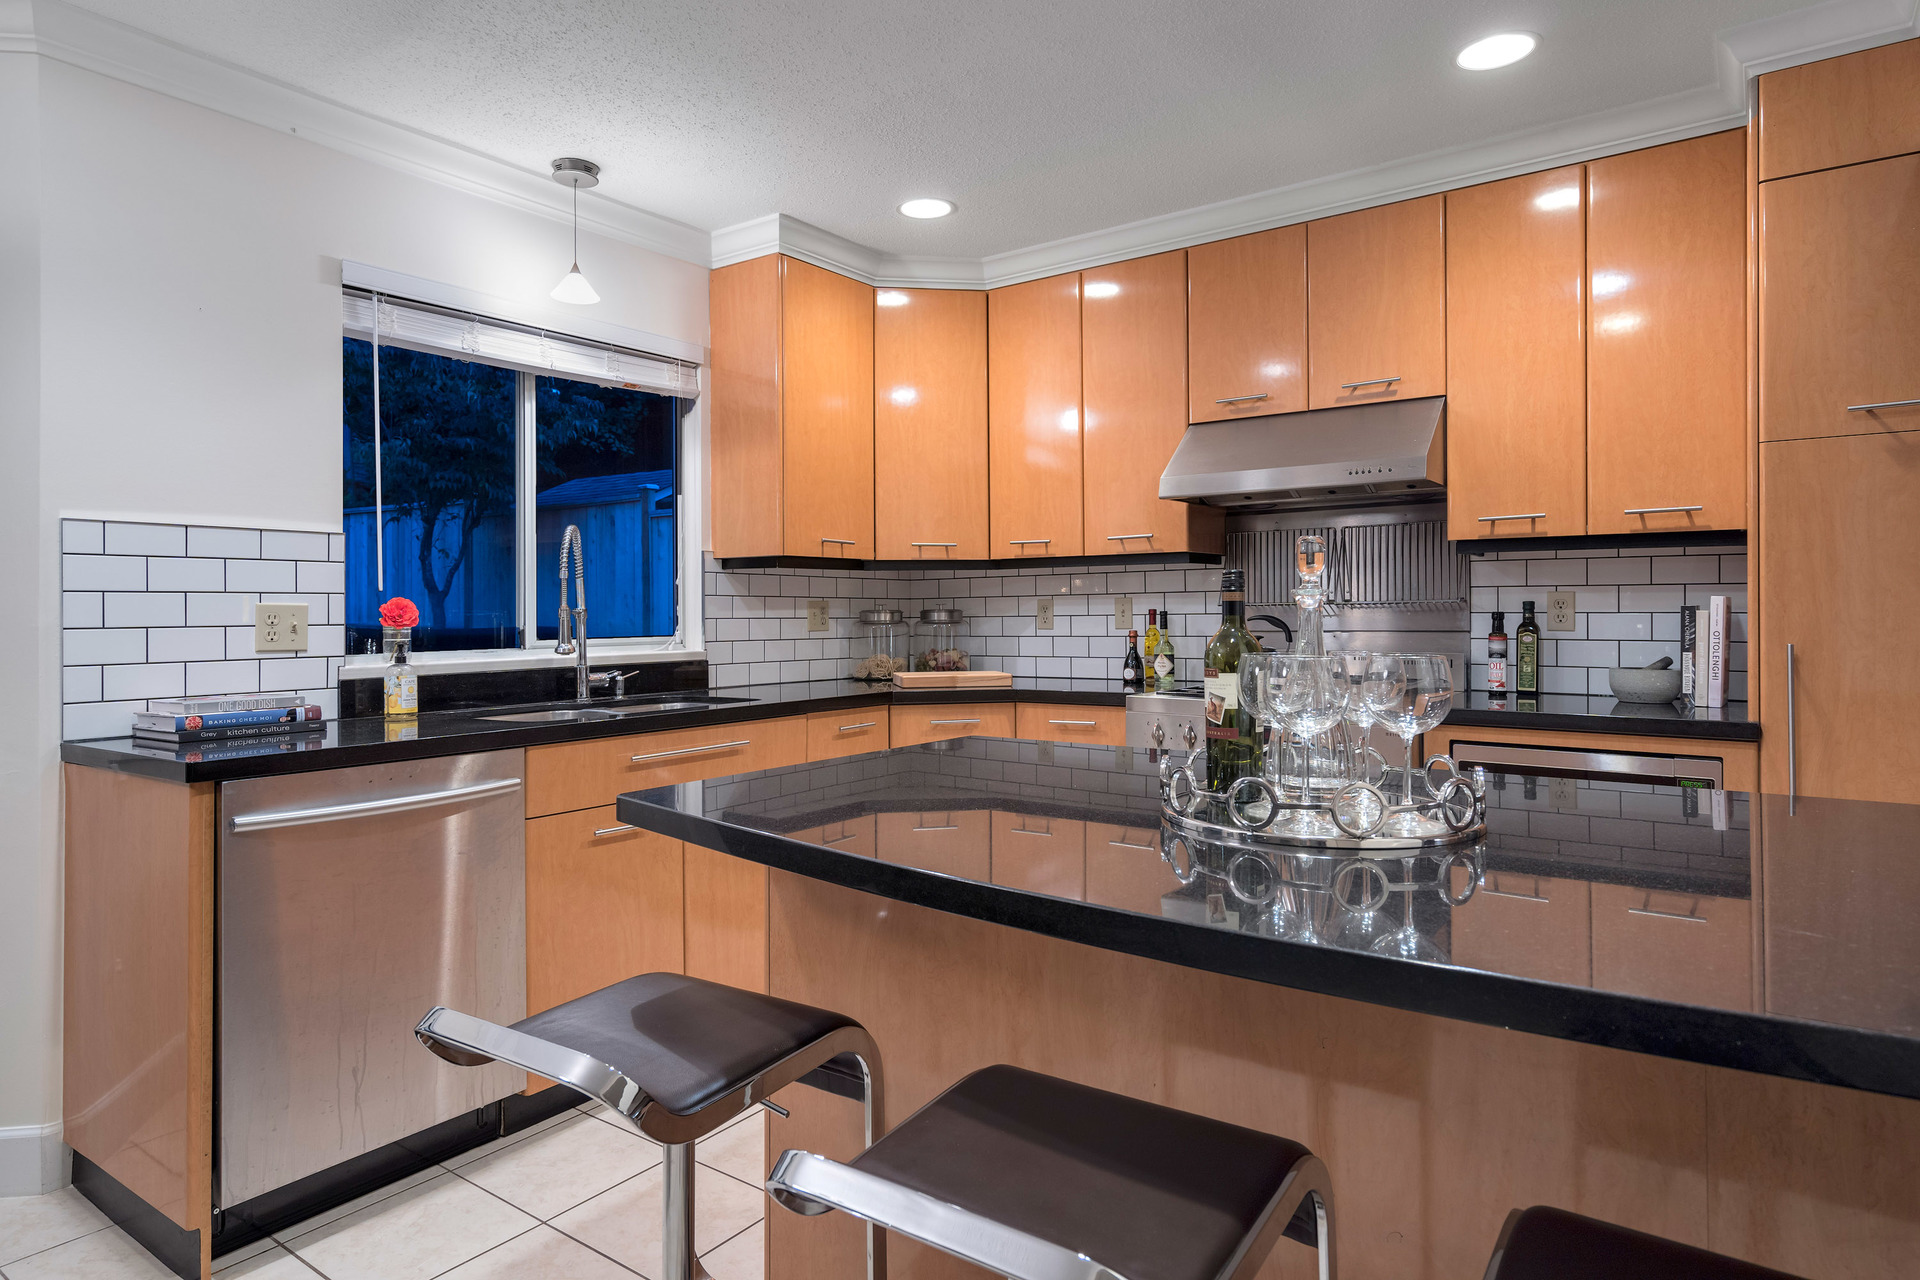 473fea1 at 4753 Woodrow Crescent, Lynn Valley, North Vancouver